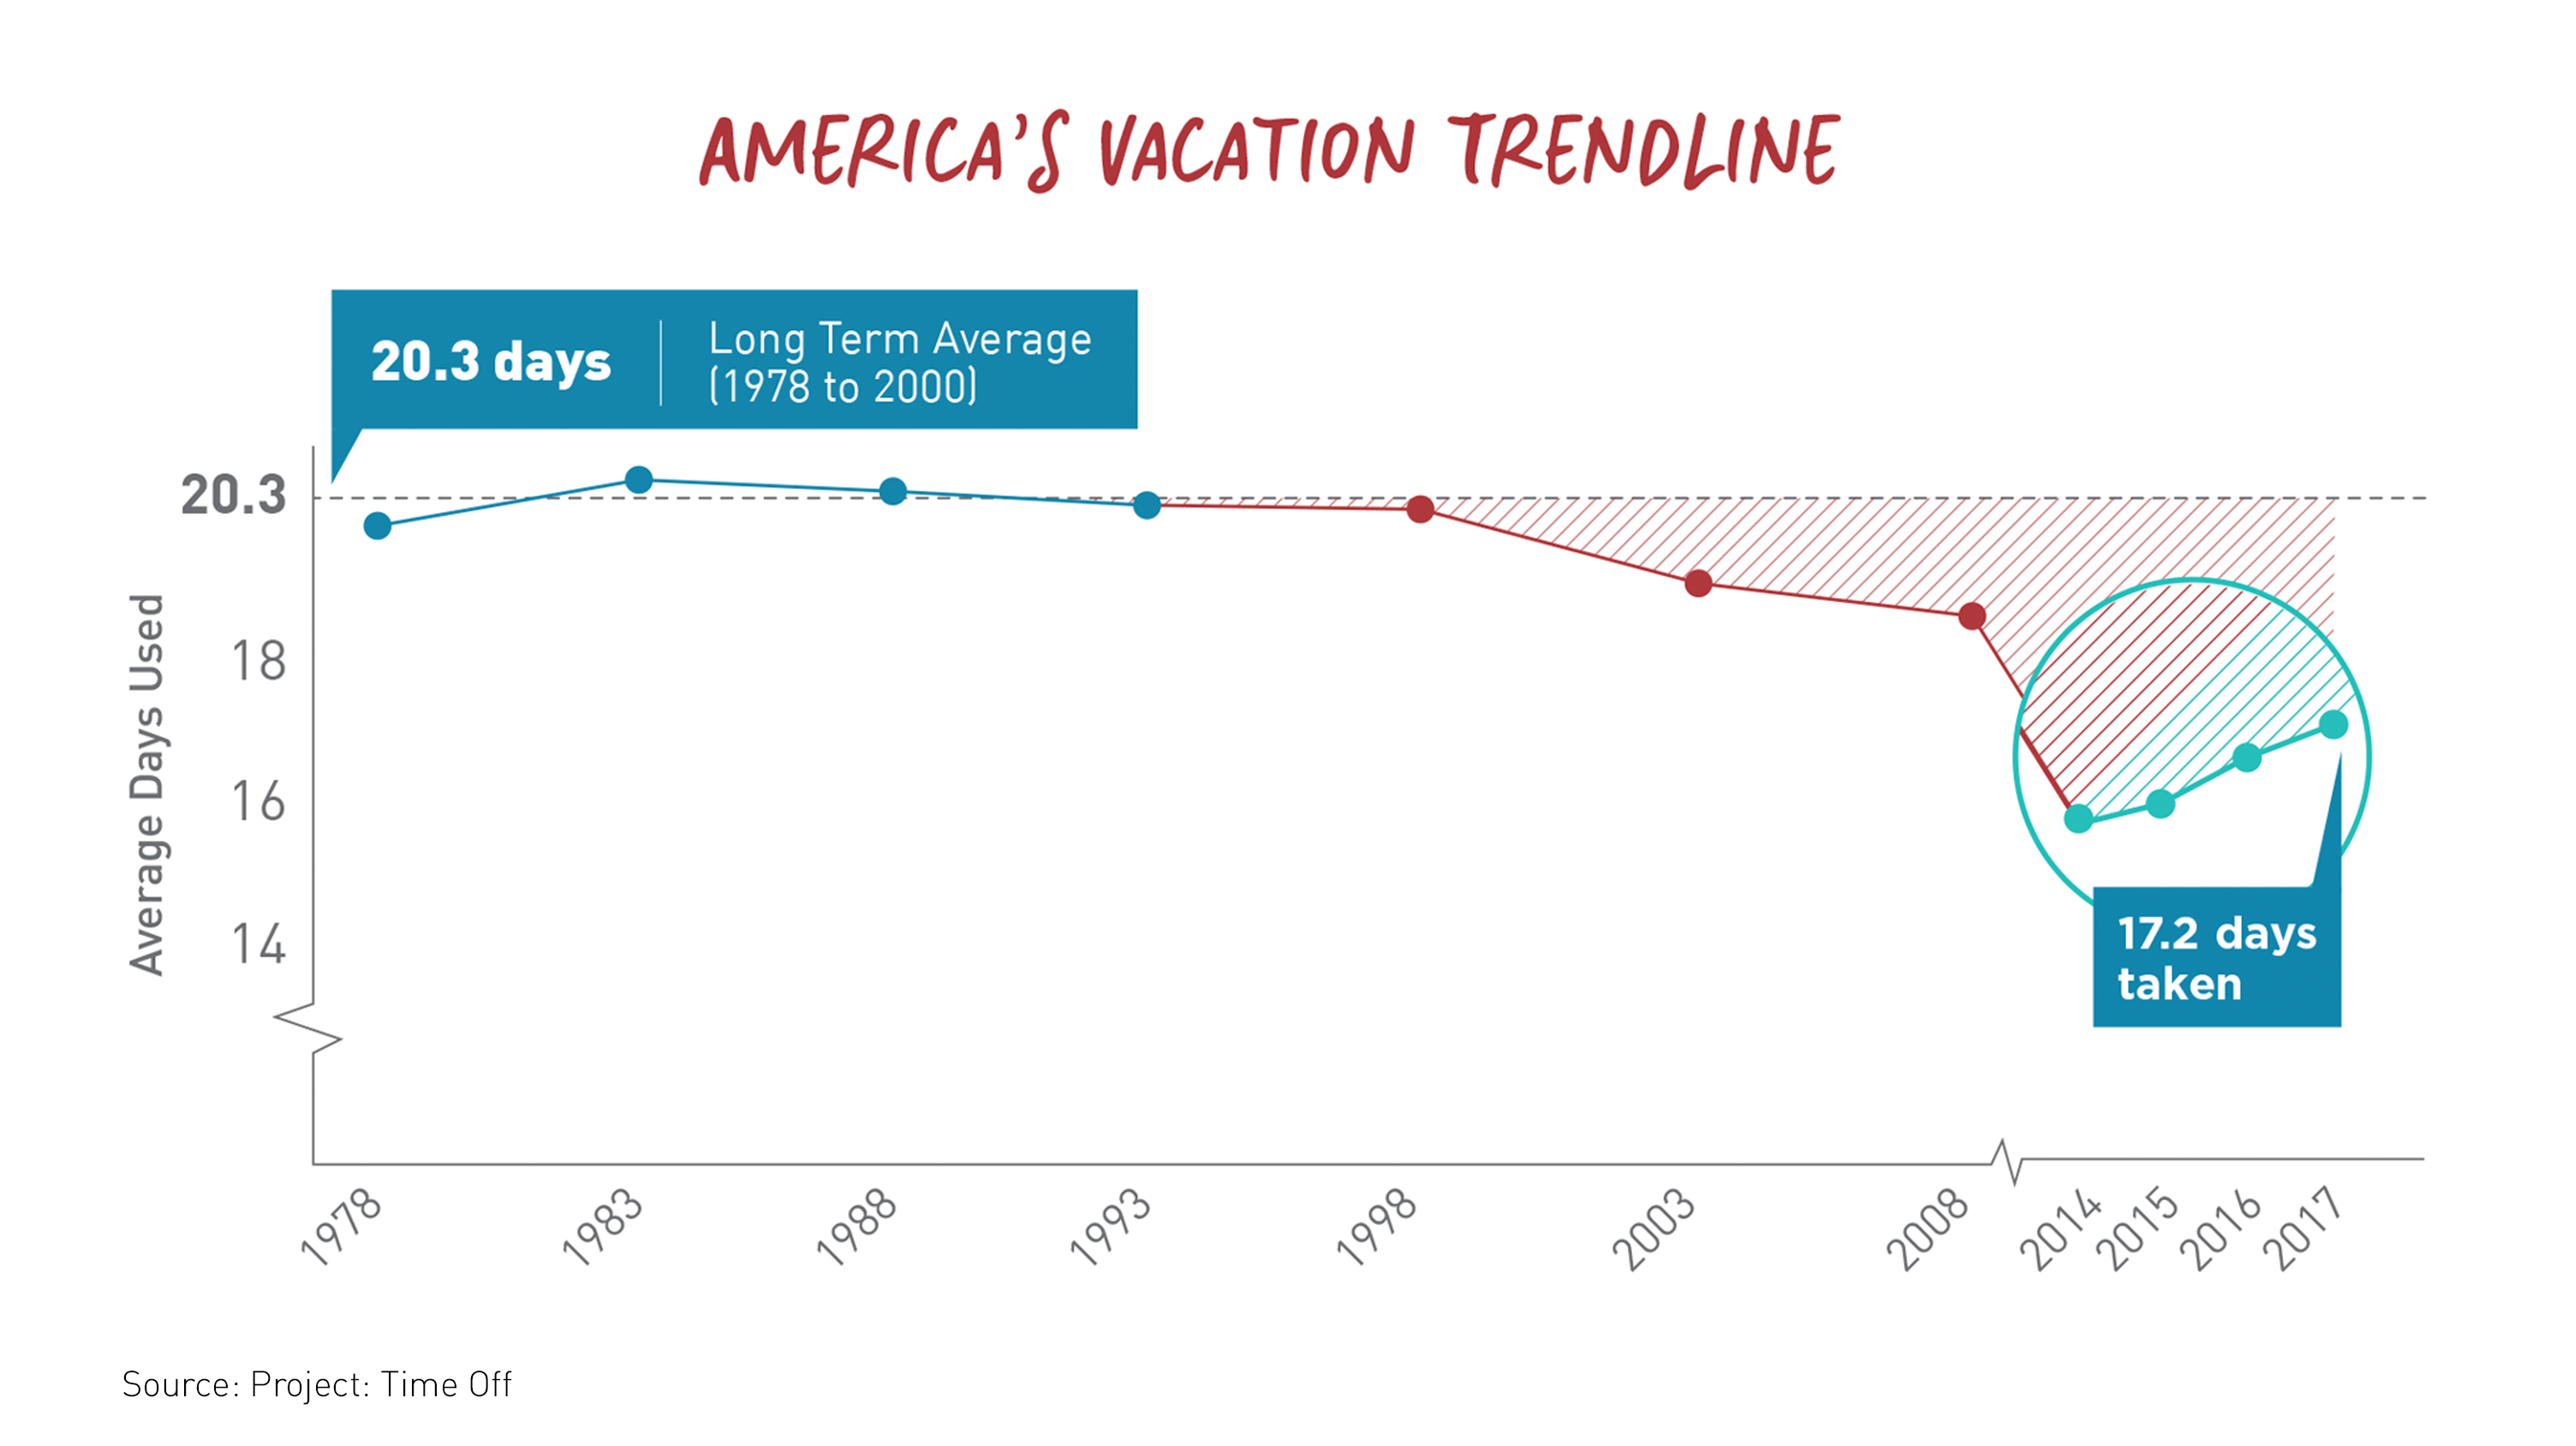 Project: Time Off chart of America's vacation trendline, 1978-2017.